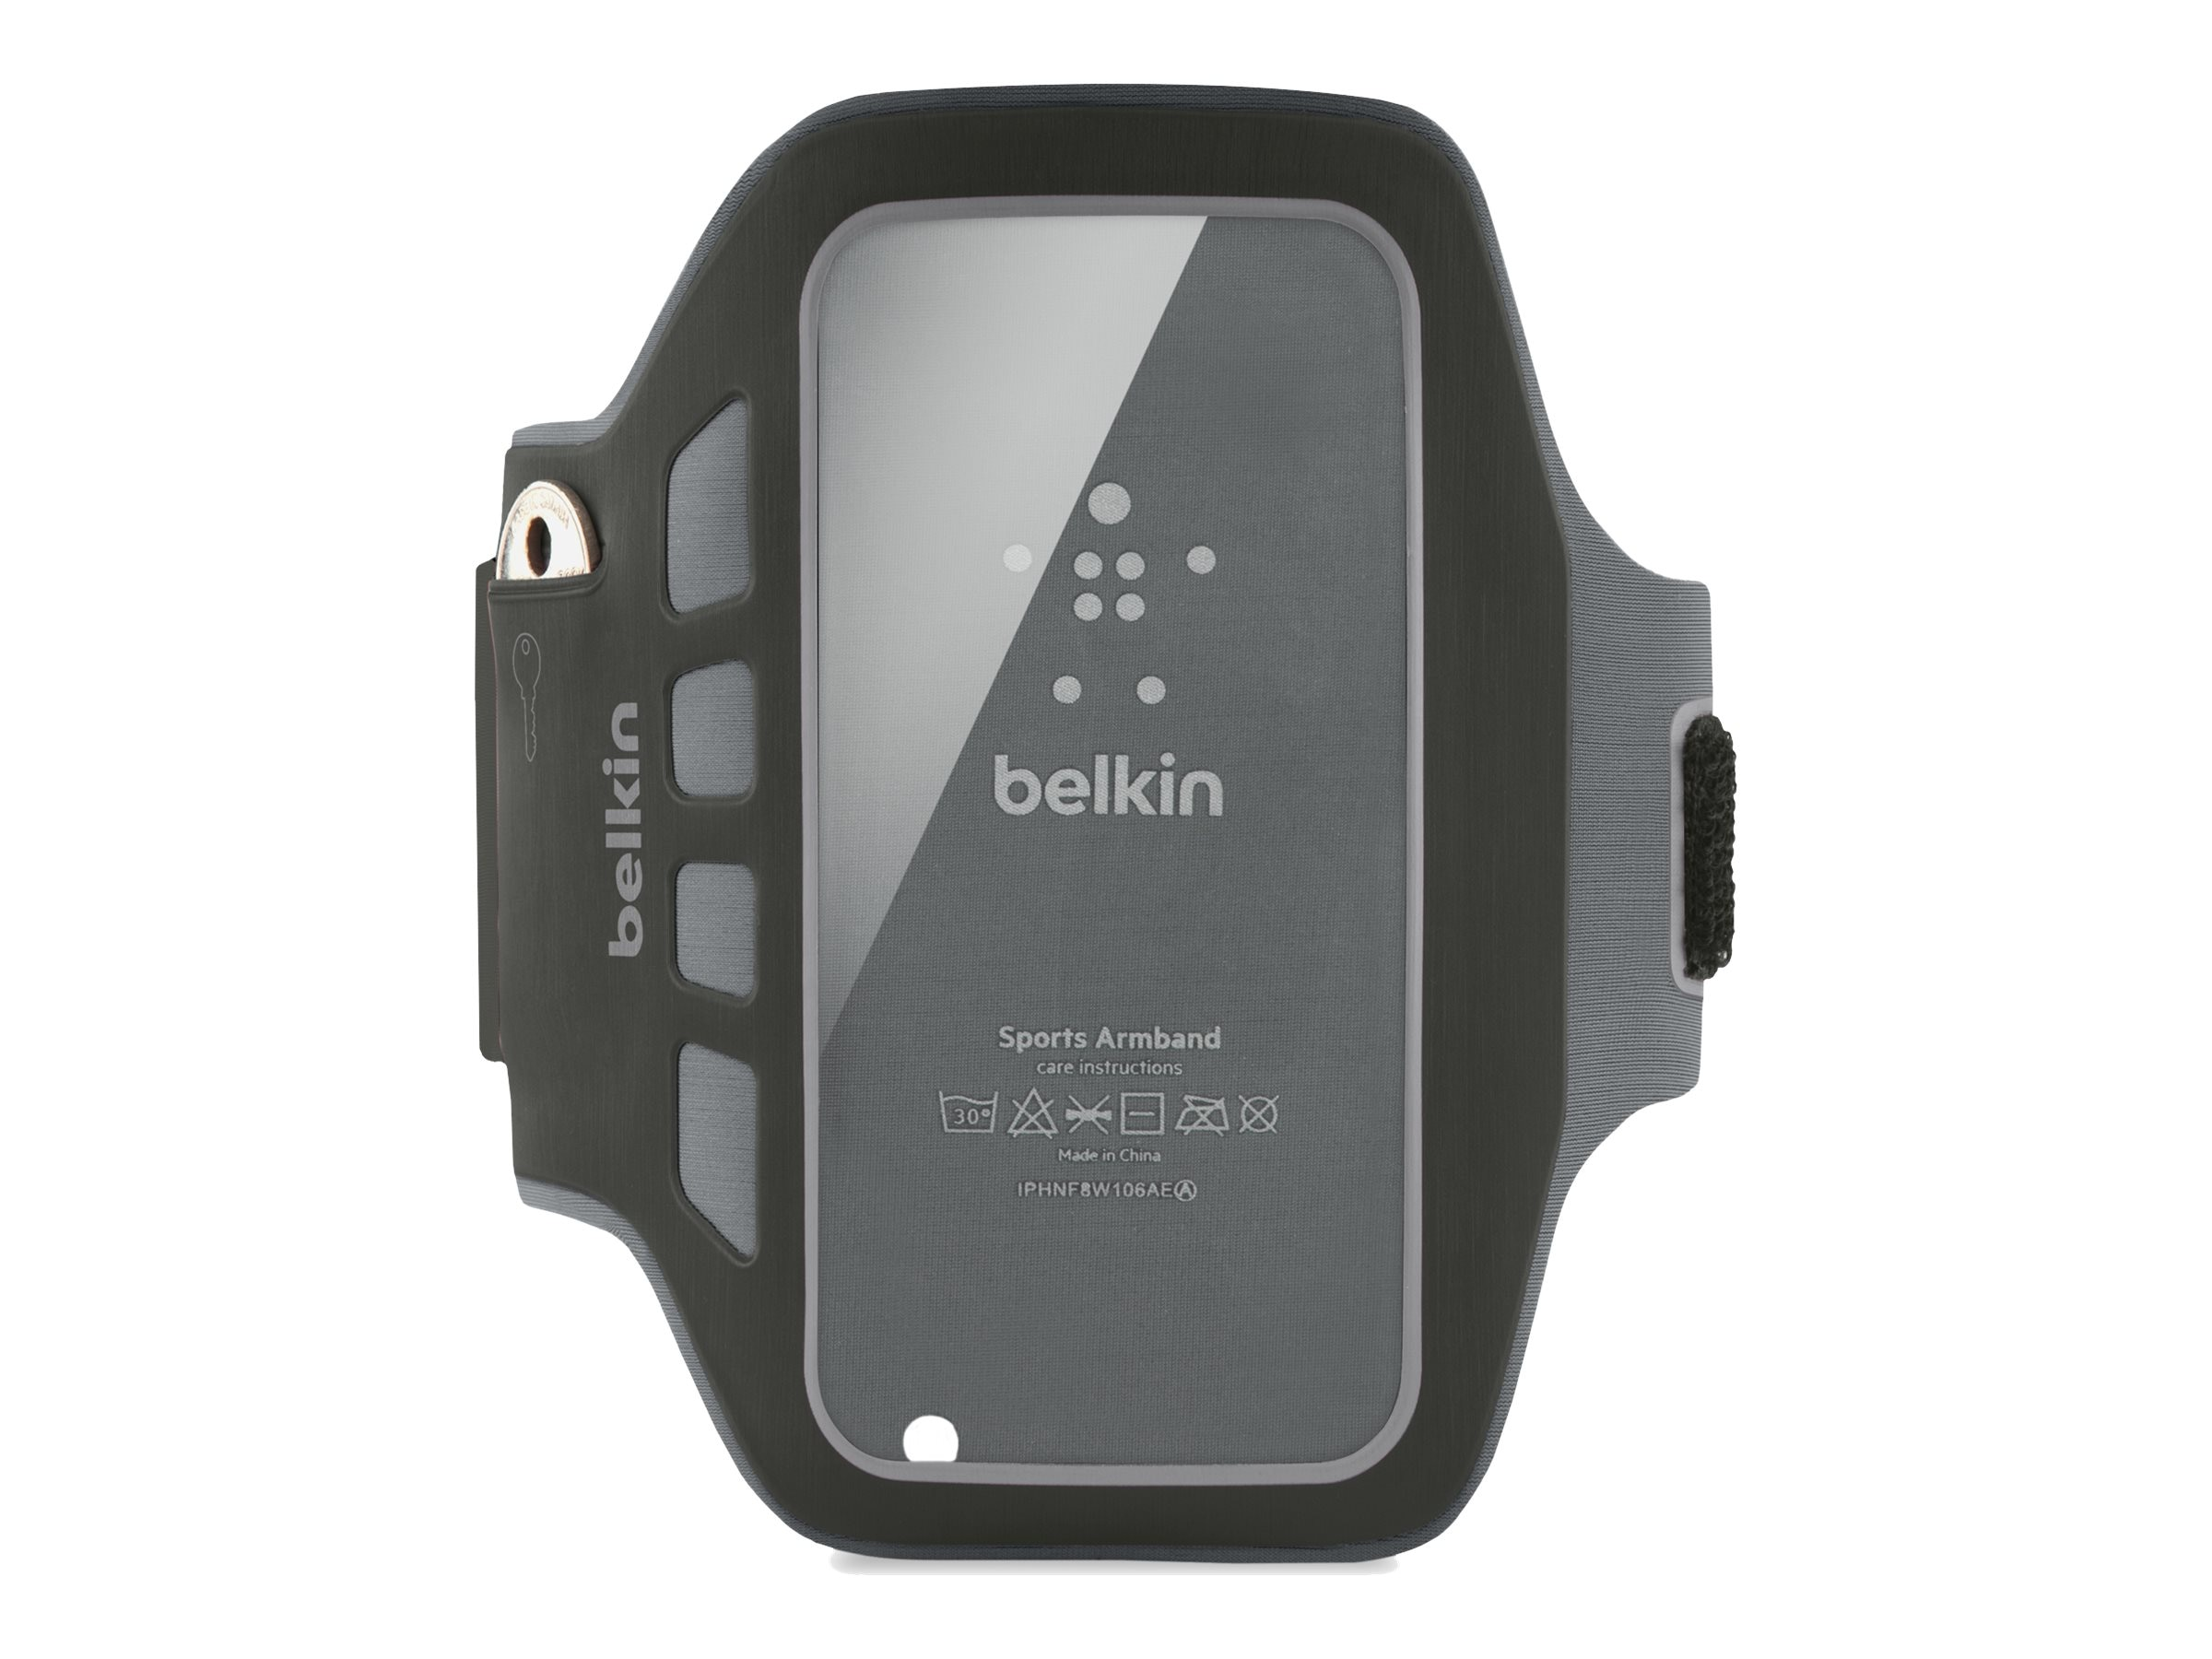 Belkin Ease-Fit Plus Armband, Blacktop for iPhone5, F8W106TTC00